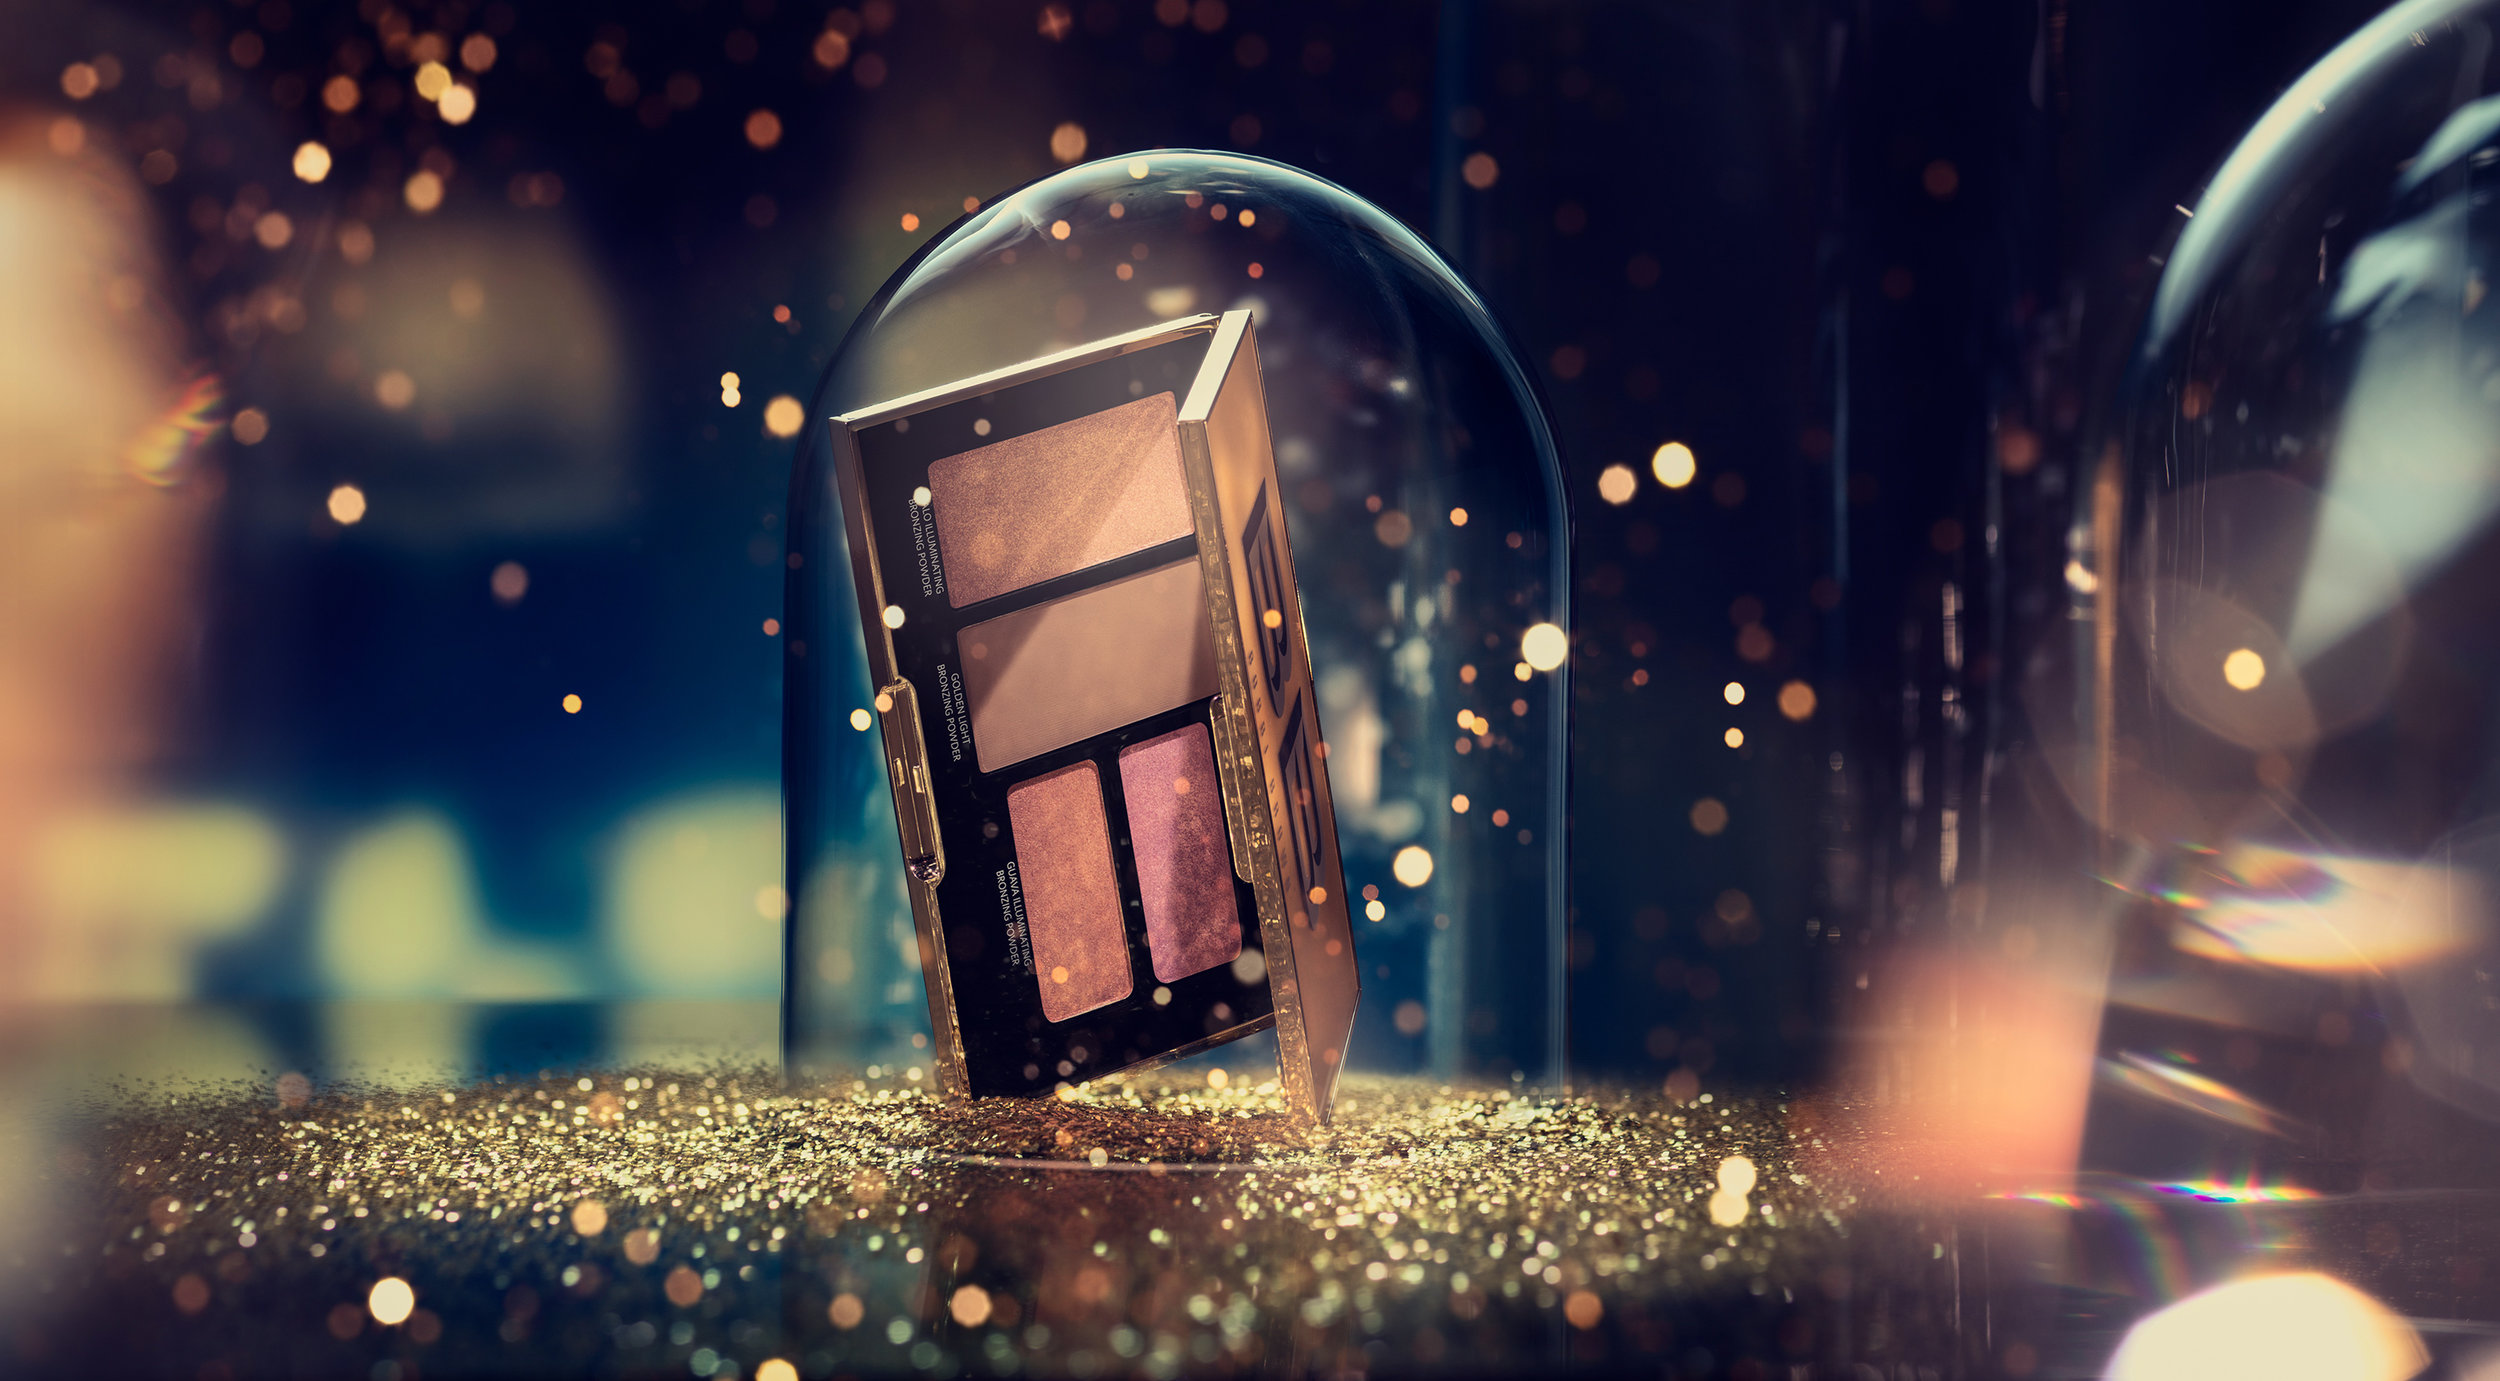 BOBBI BROWN HOLIDAY - 5 IMAGES